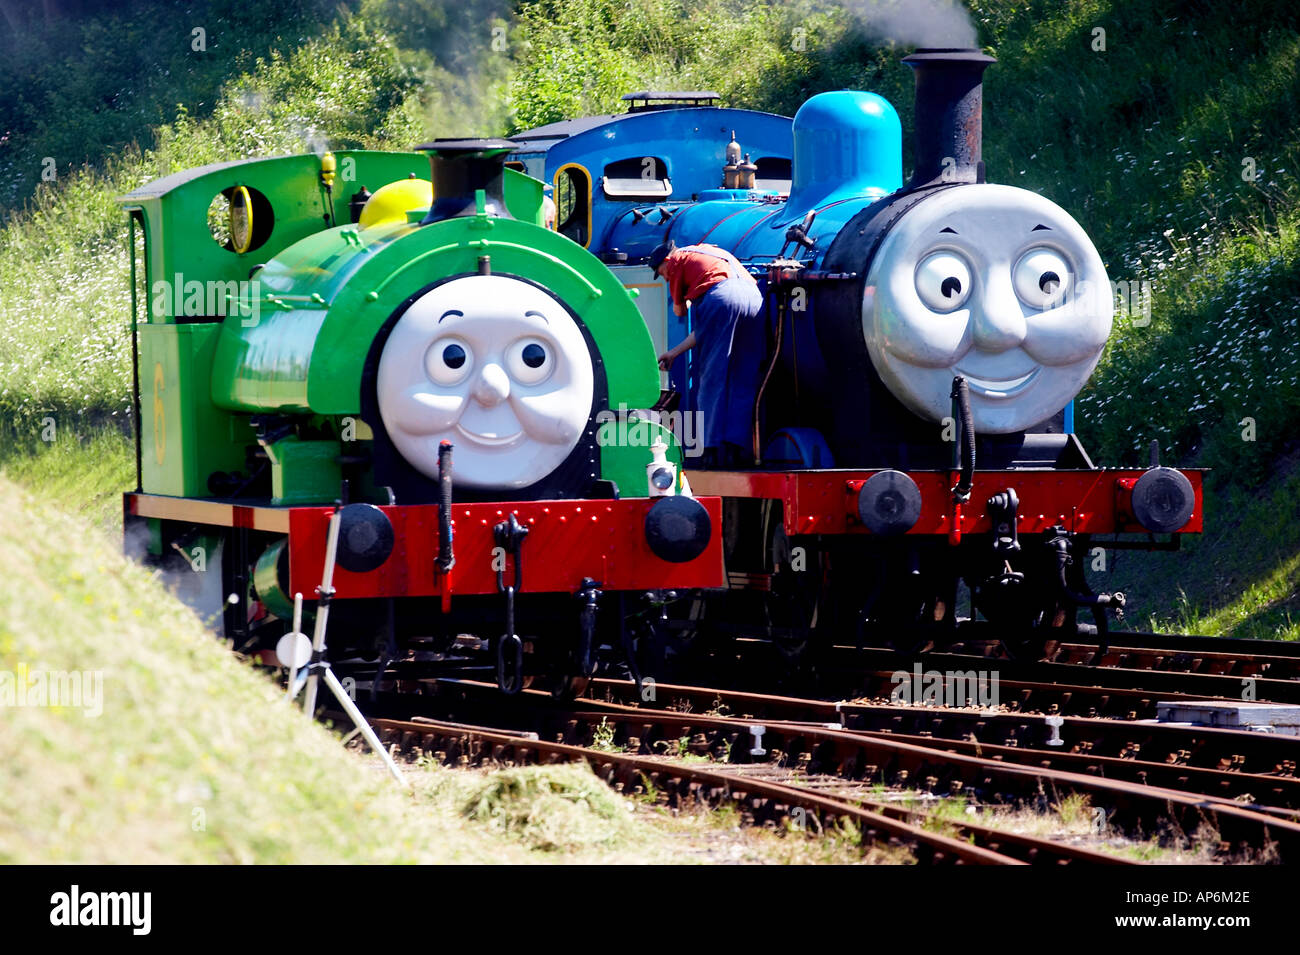 Thomas The Tank Engine With Percy At The Bluebell Railway